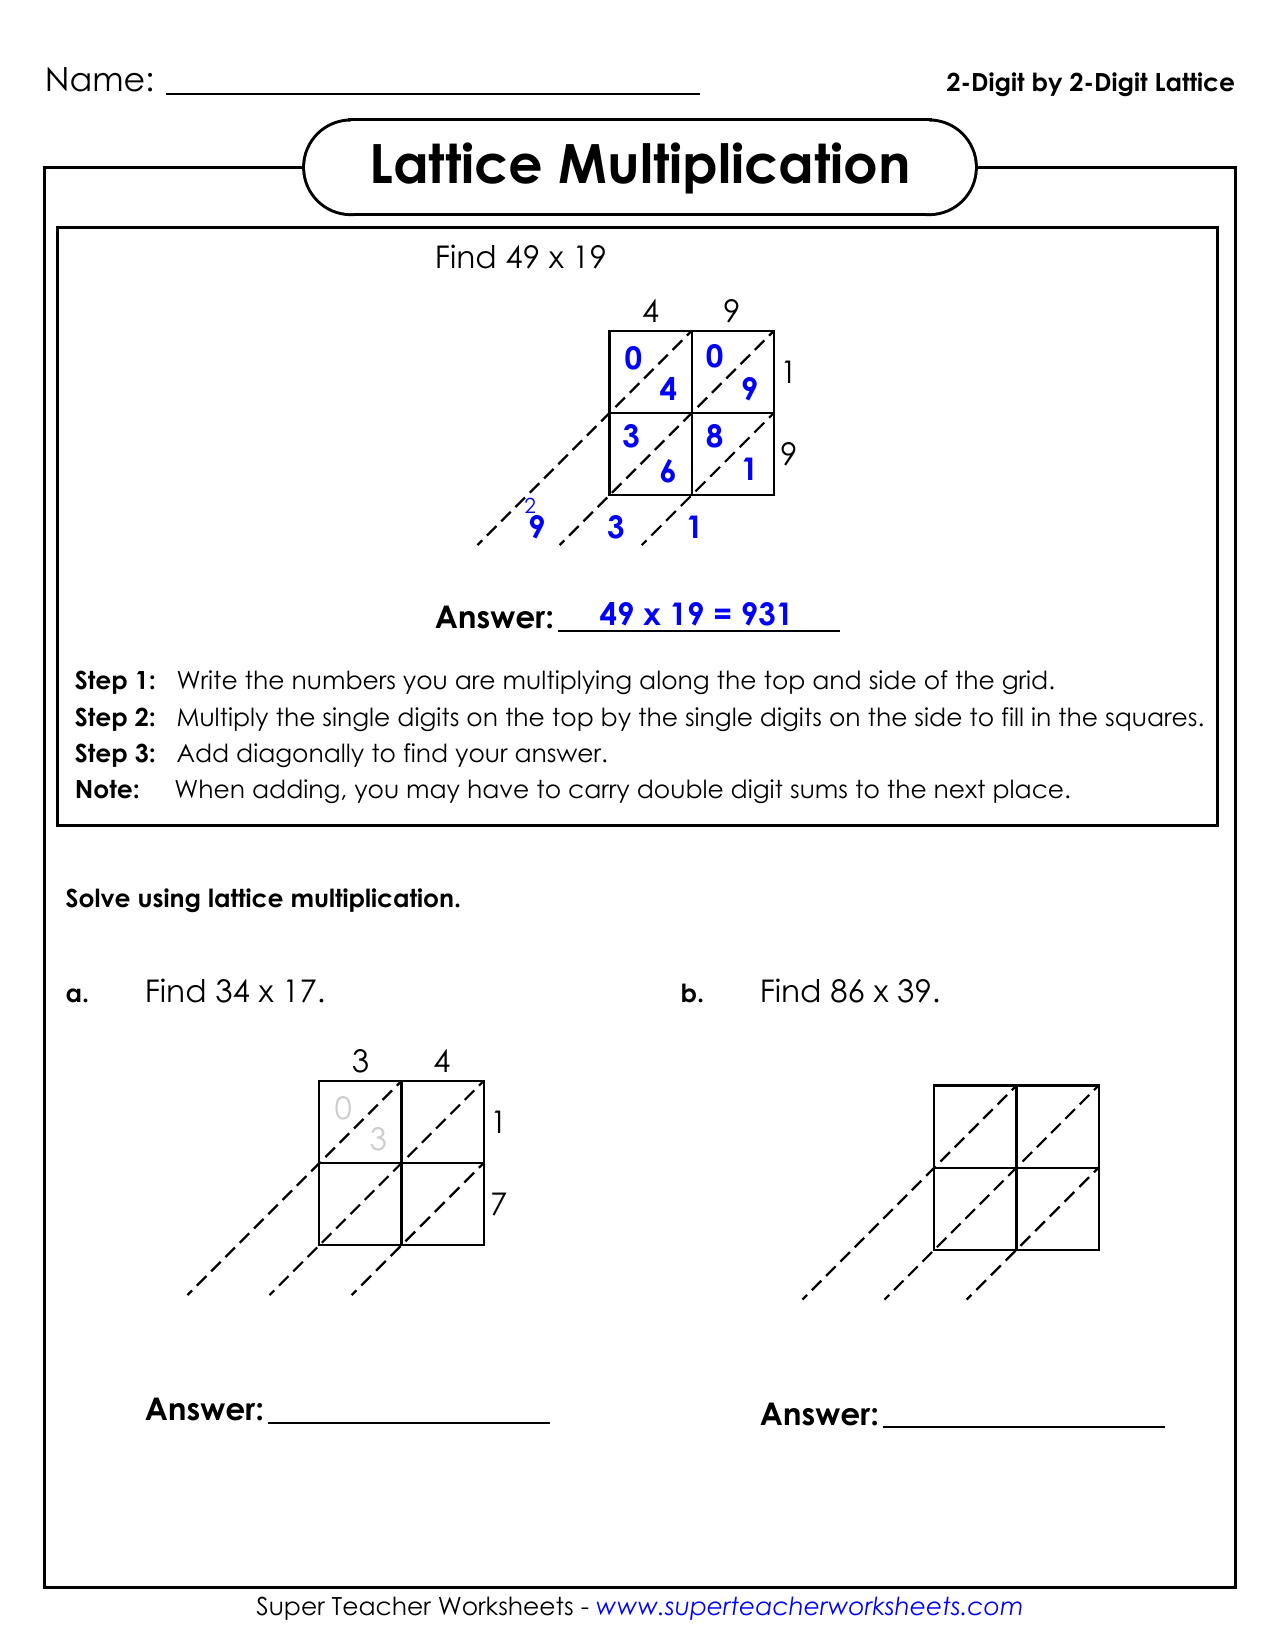 2-Digit2-Digit Lattice Lattice Multiplication pertaining to Multiplication Worksheets Lattice